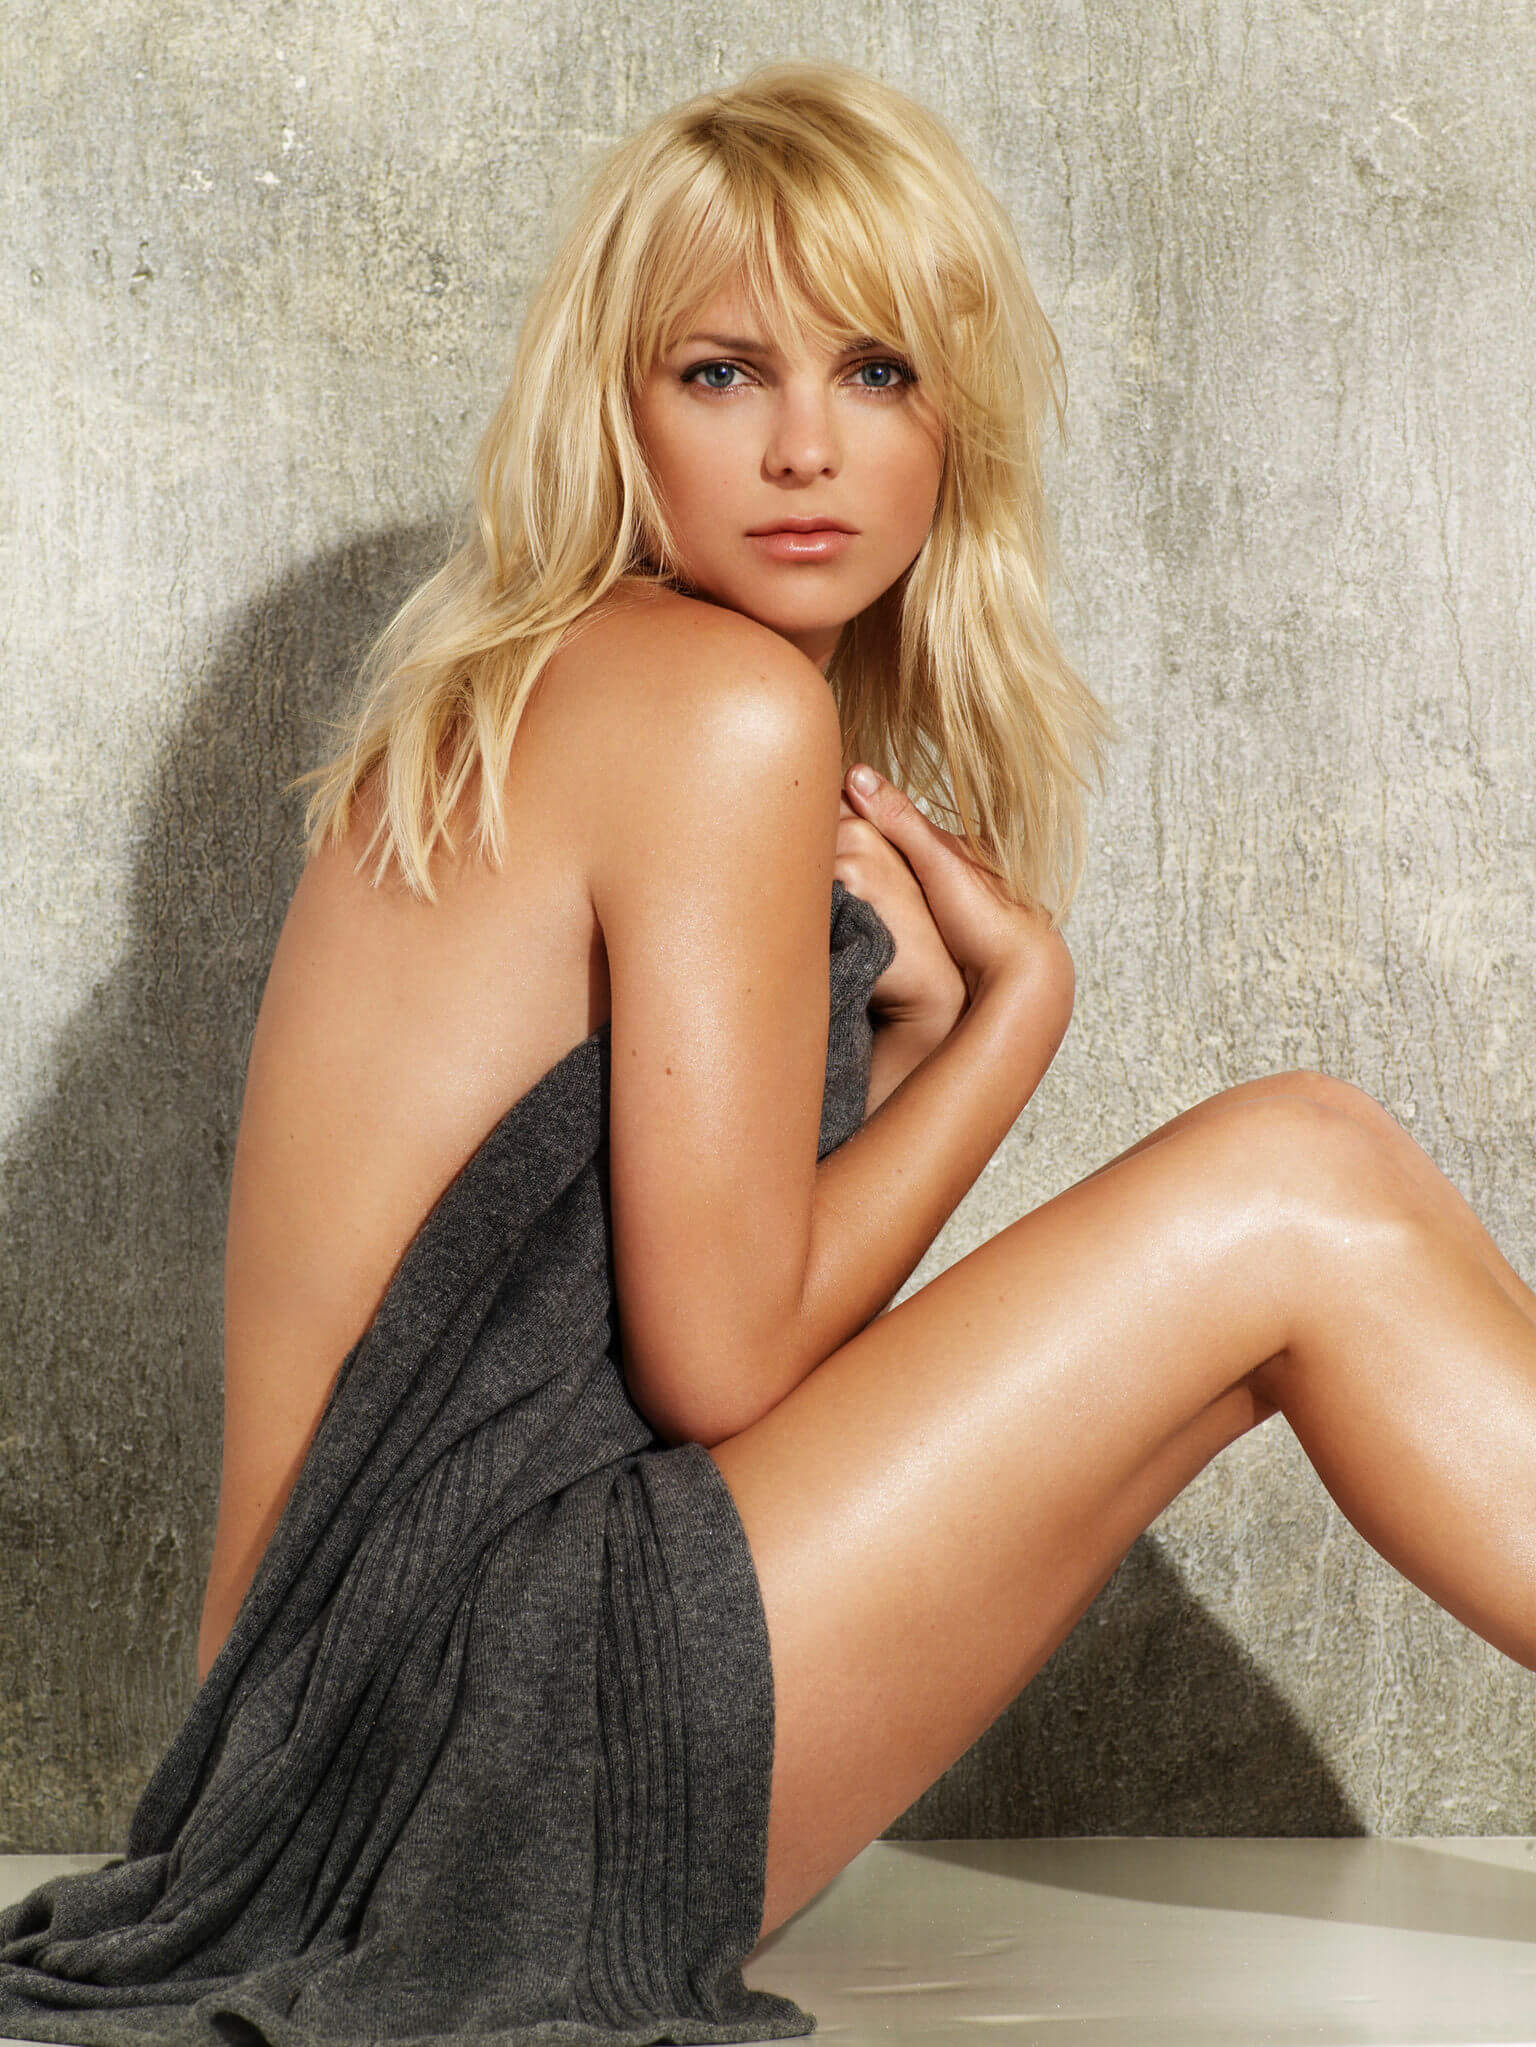 Anna Faris awesome near-nude